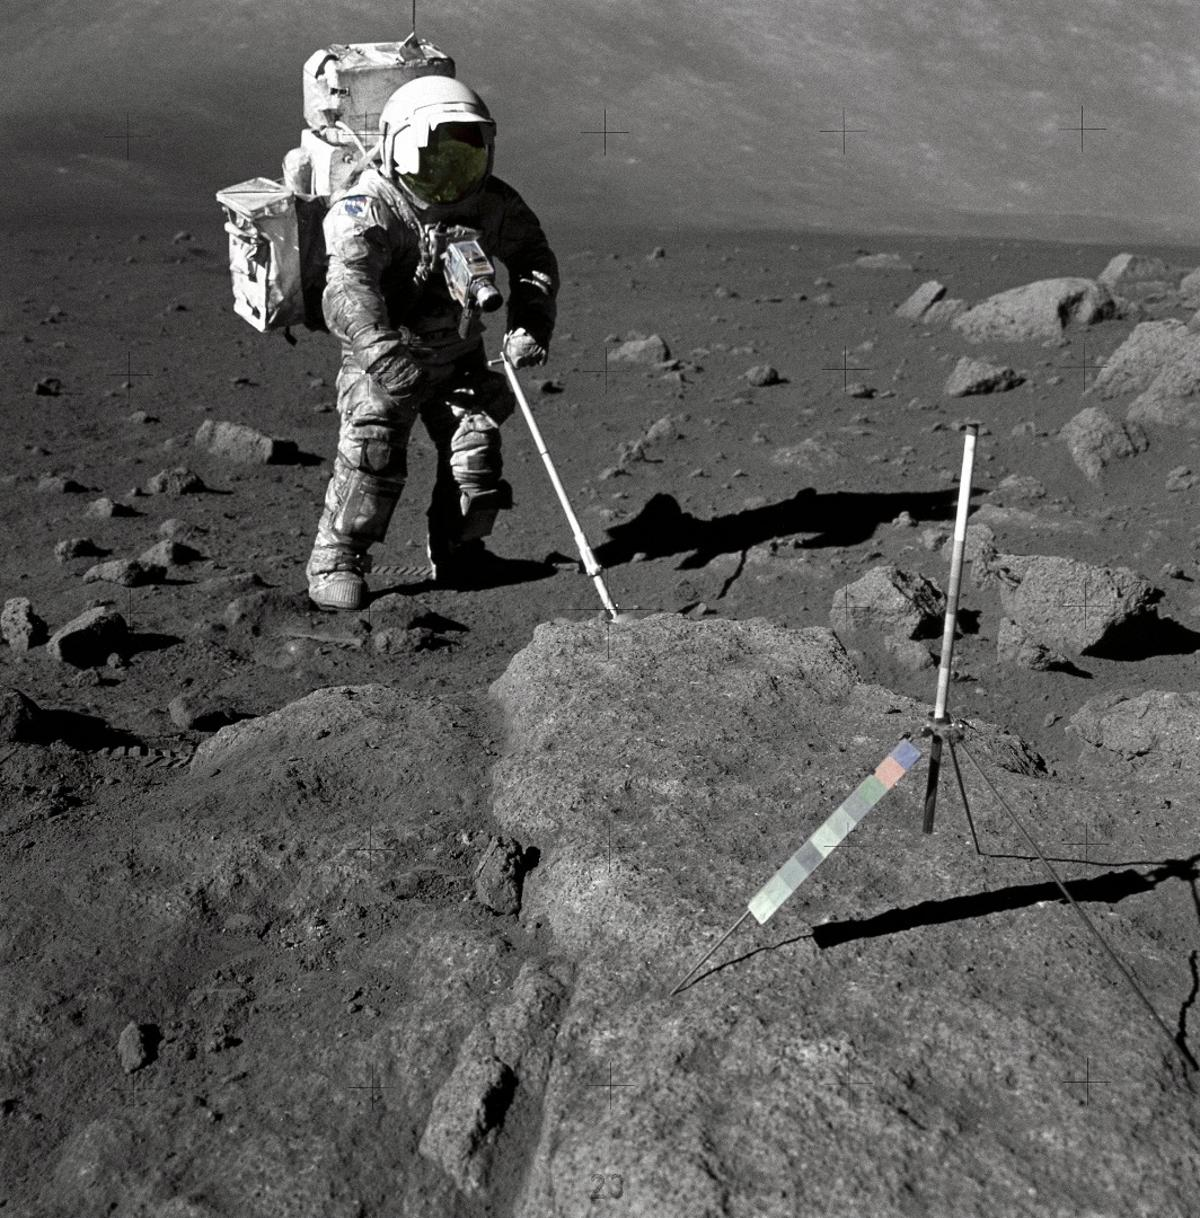 New research finds breathing lunar dust could cause health problems for astronauts spending long periods of time on the Moon